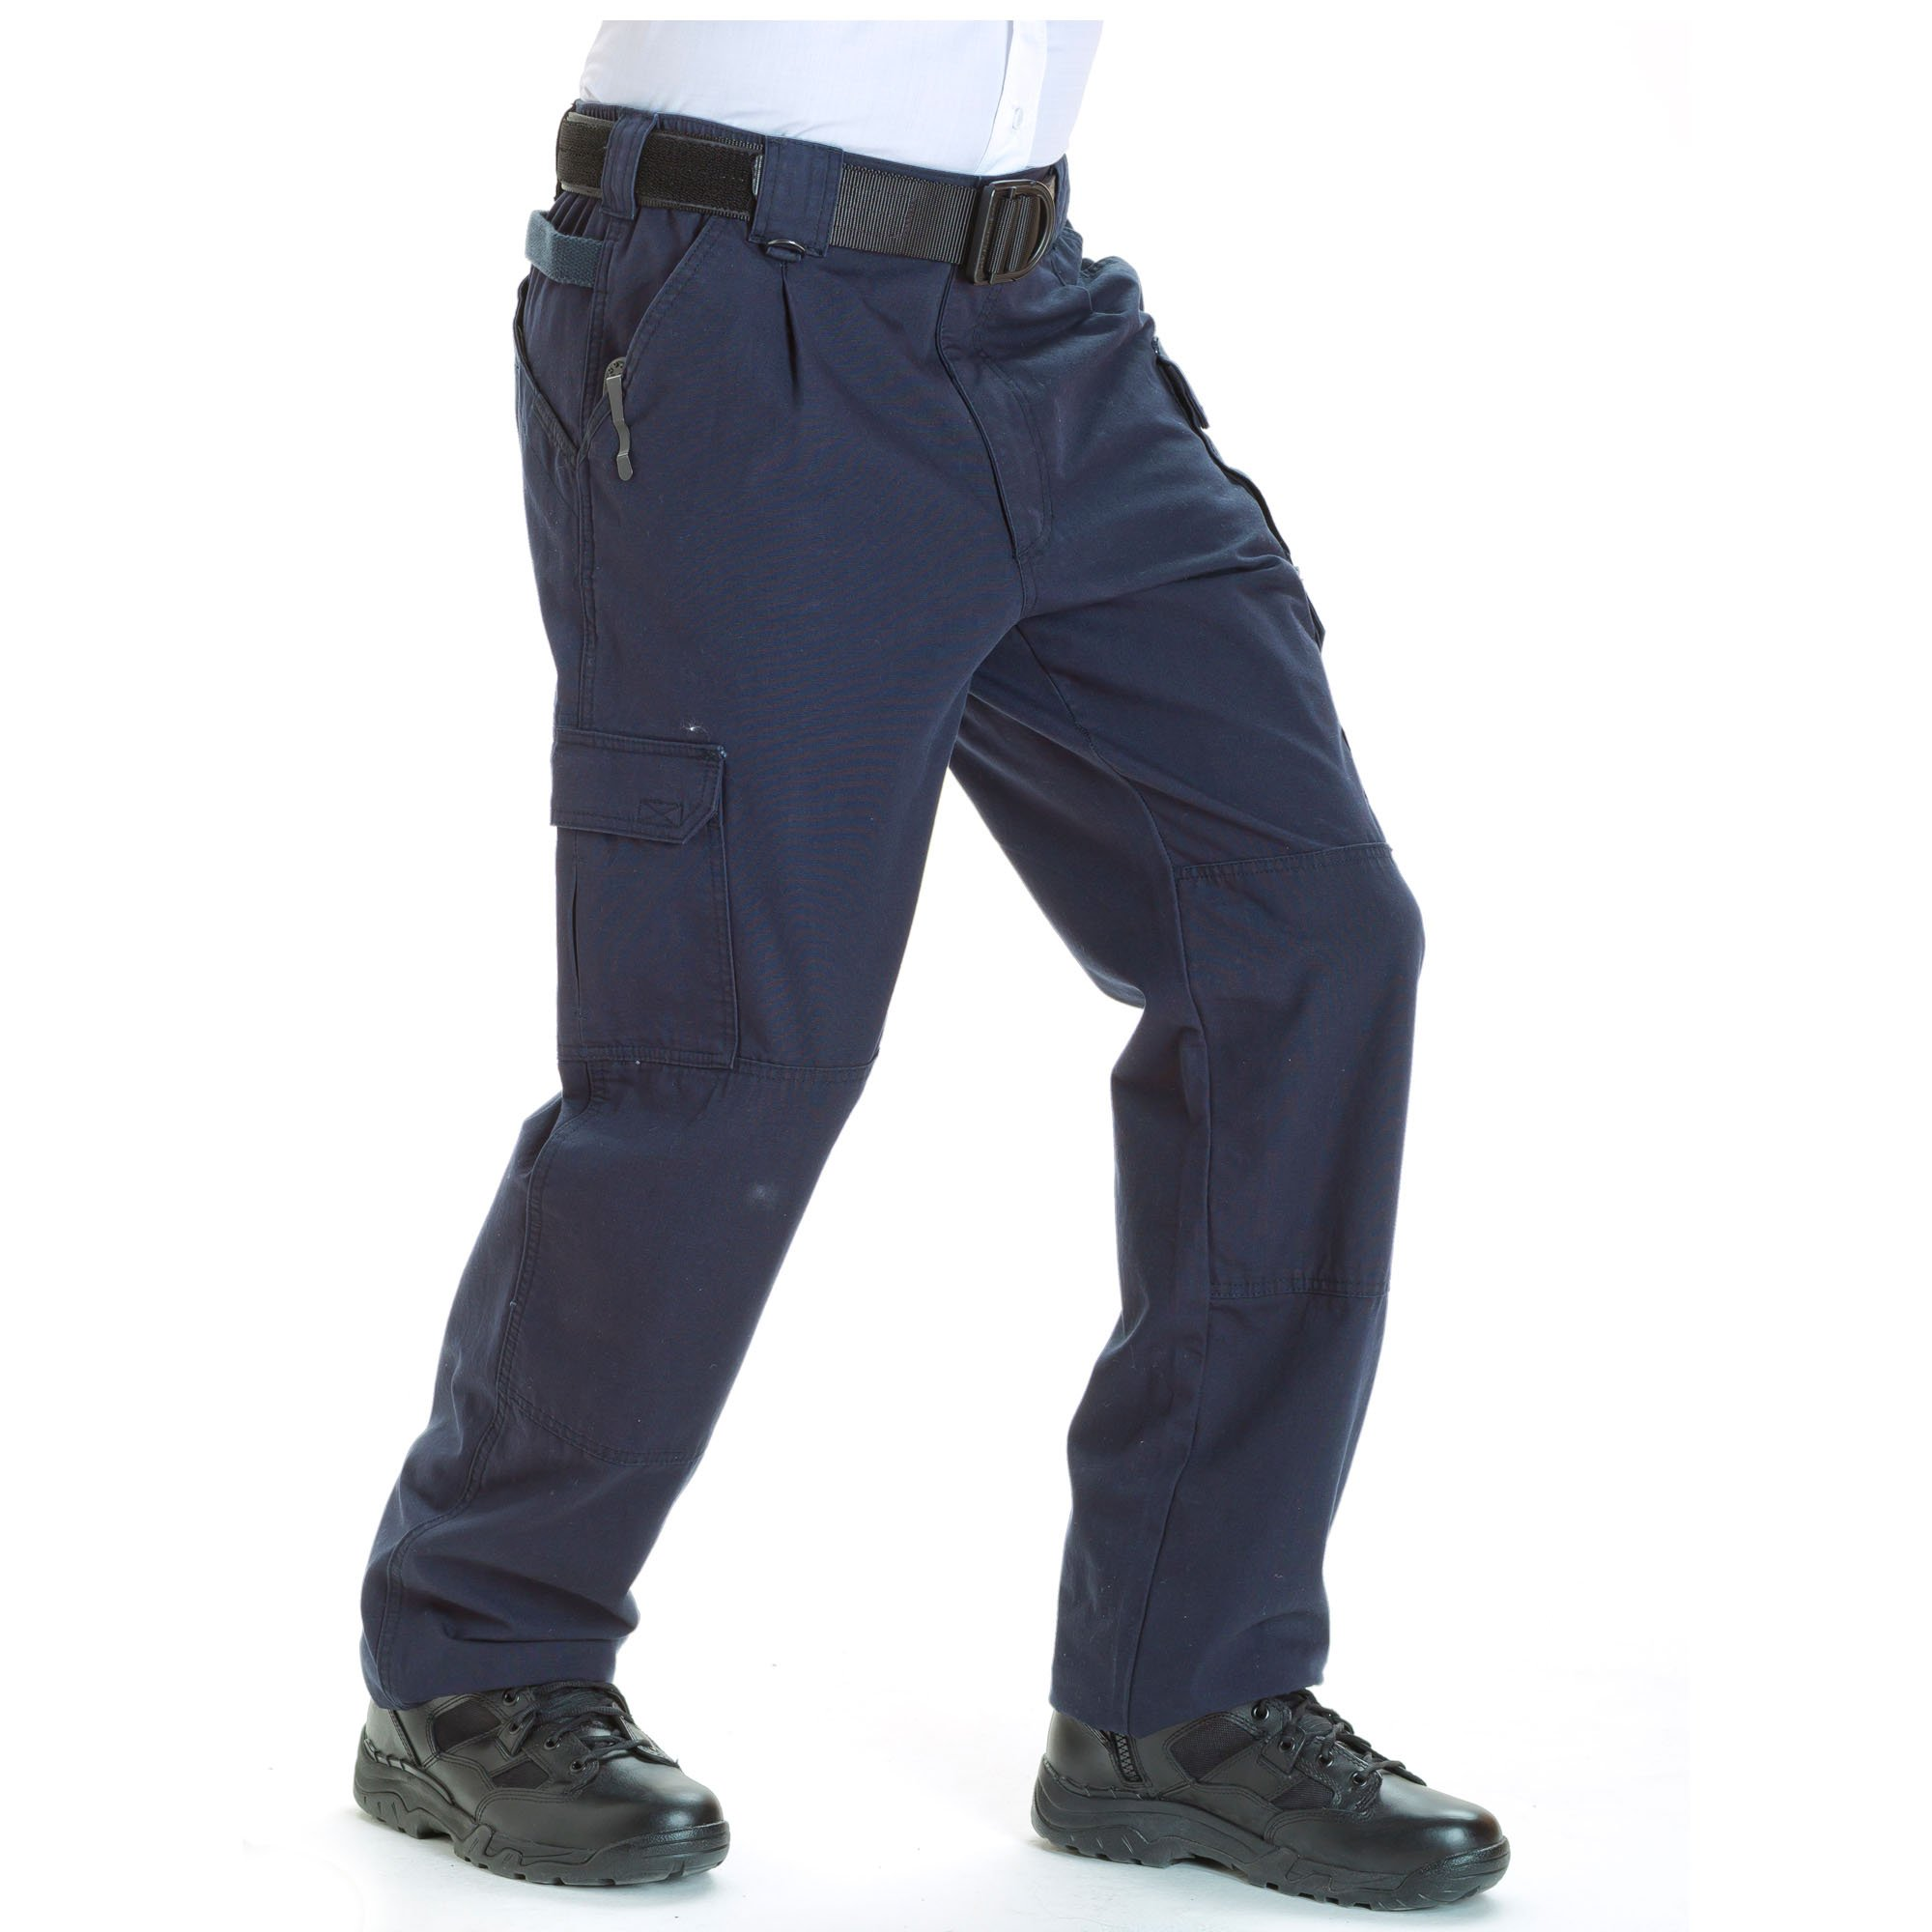 5.11 Tactical Pants,Fire Navy,36Wx34L by 5.11